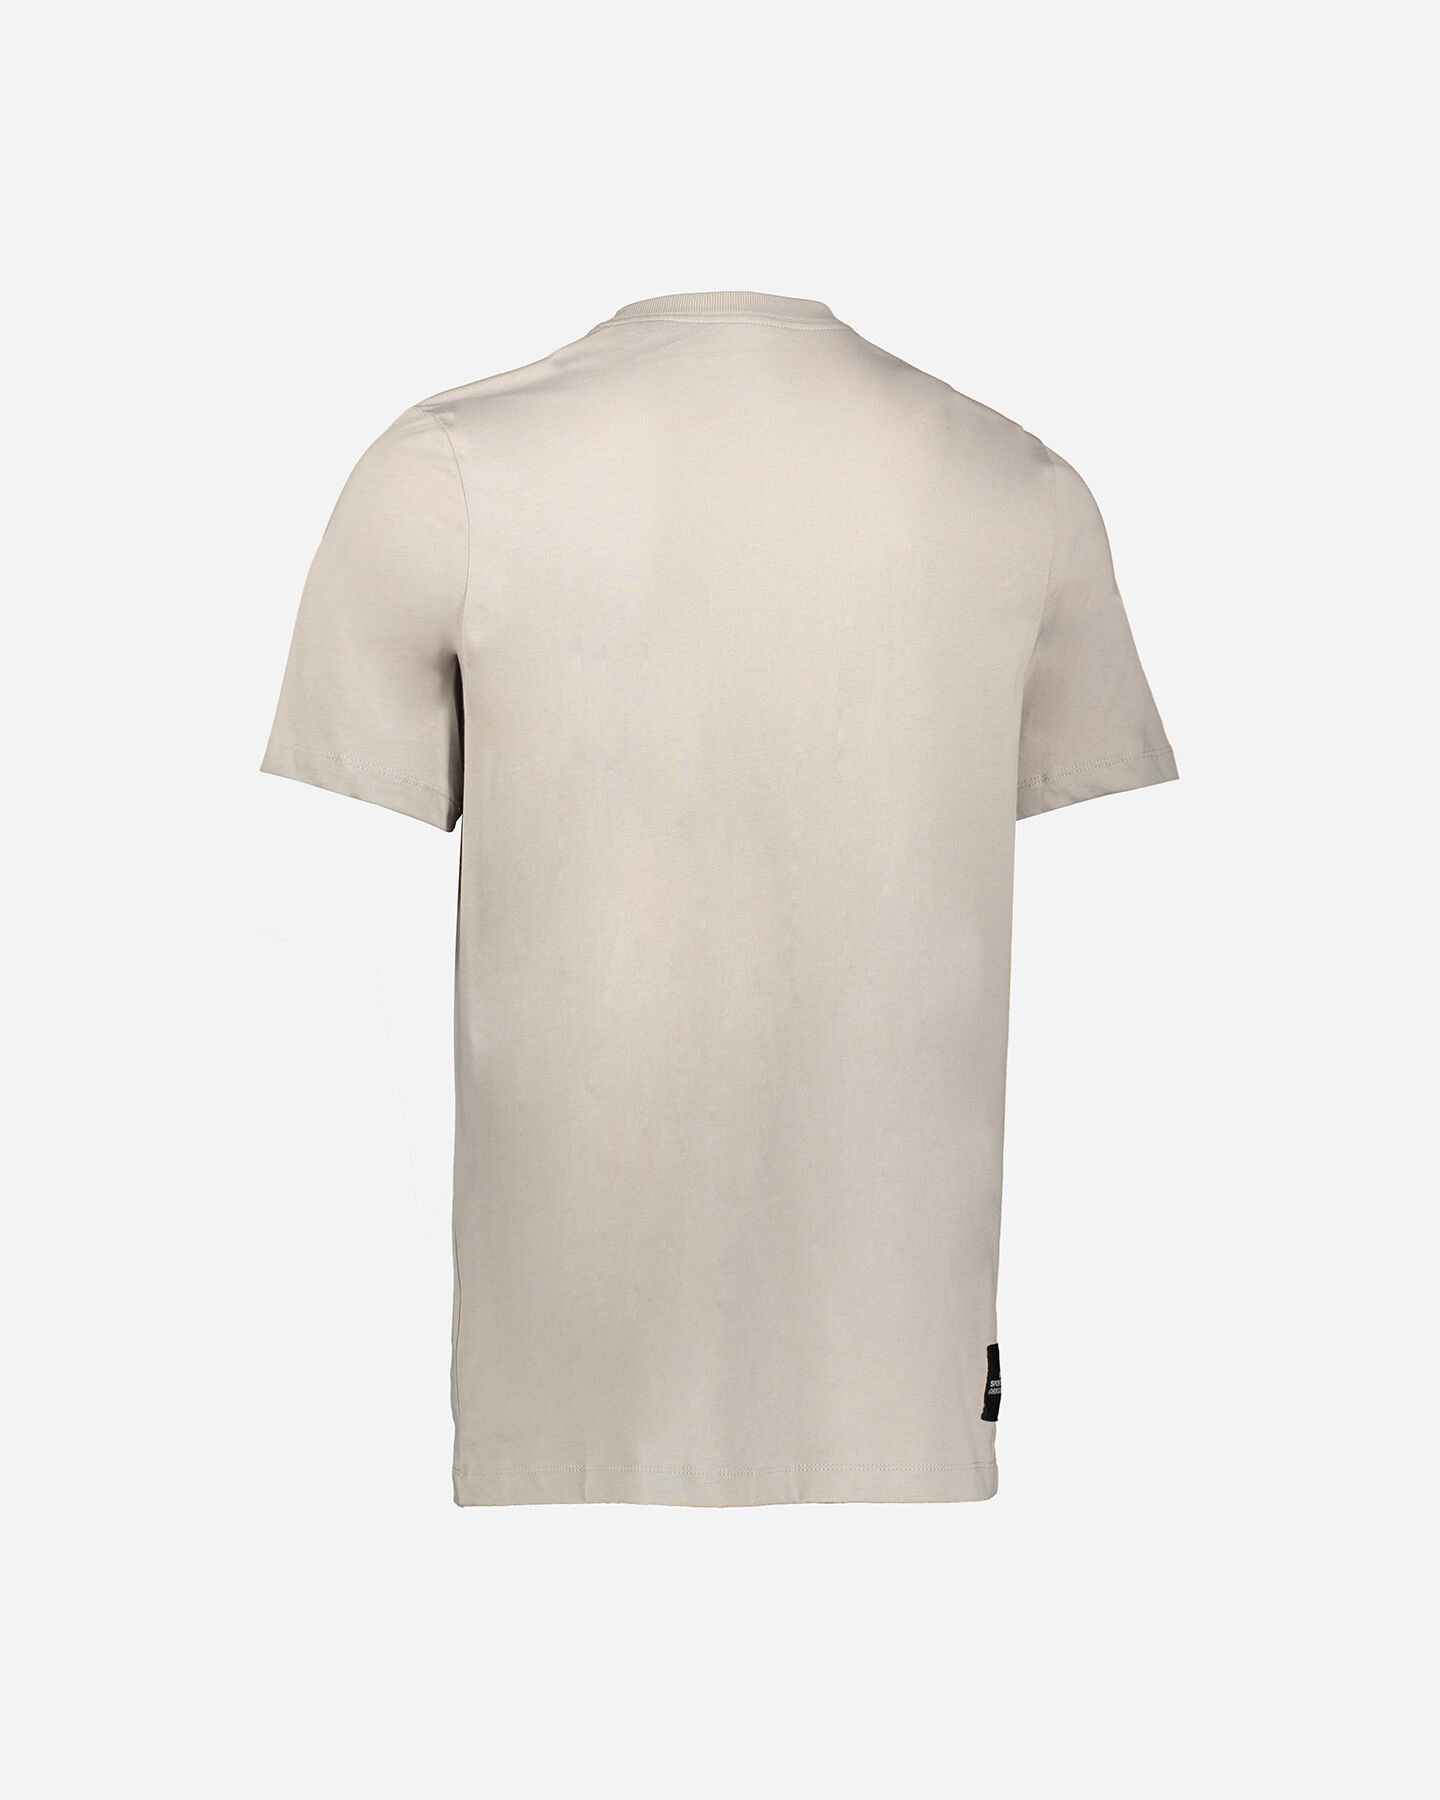 T-Shirt NIKE TREND SPIKE M S5225726 scatto 1